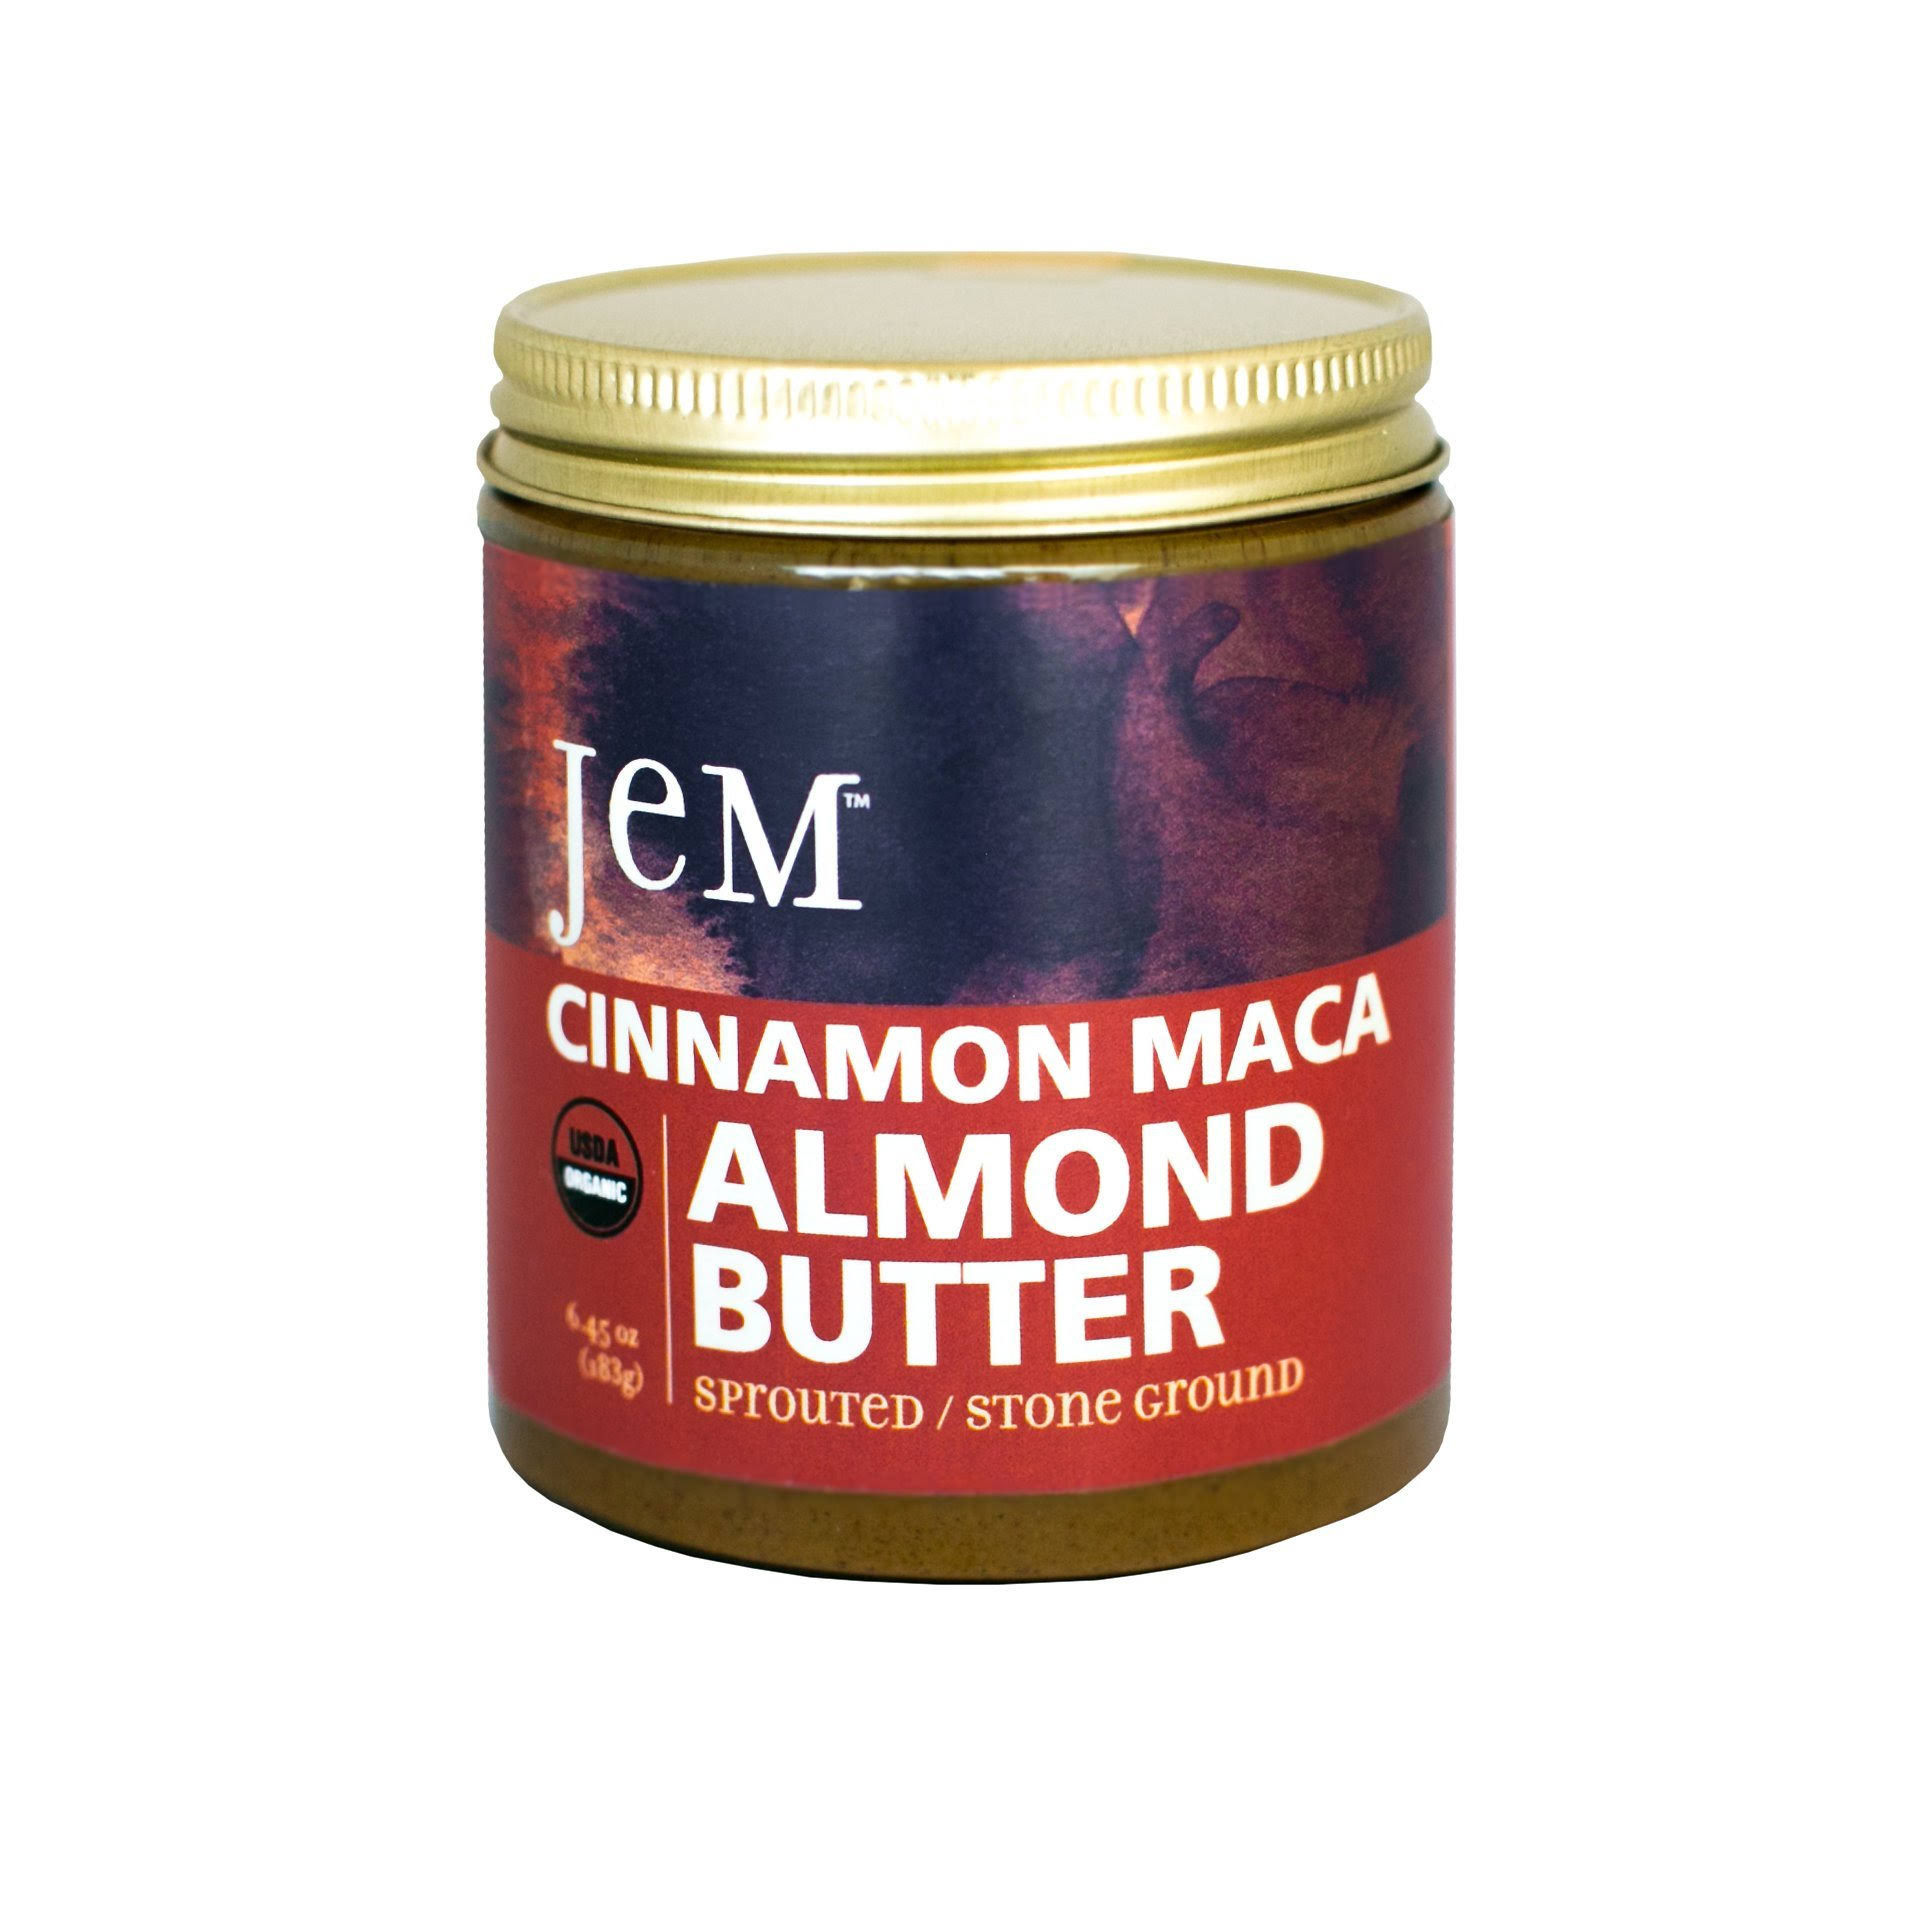 Jem Almond Butter, Cinnamon Maca - 6.52 oz